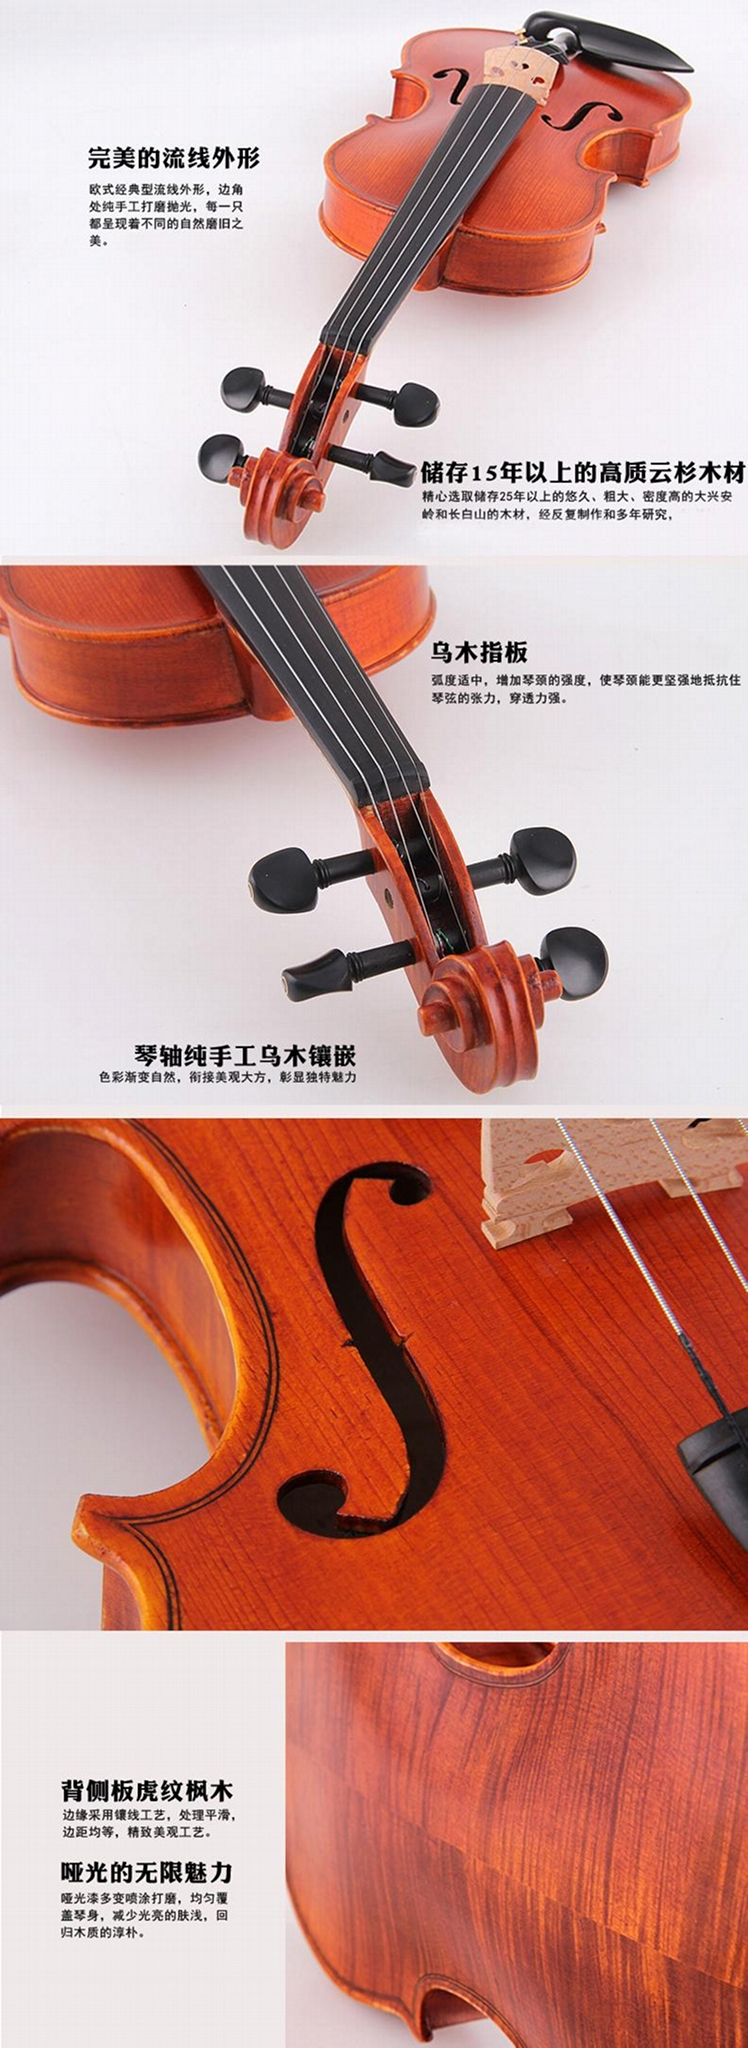 Over 15 years wood, Handcraft, Hand painting JYVL-M500 Middle Grade Violin 10